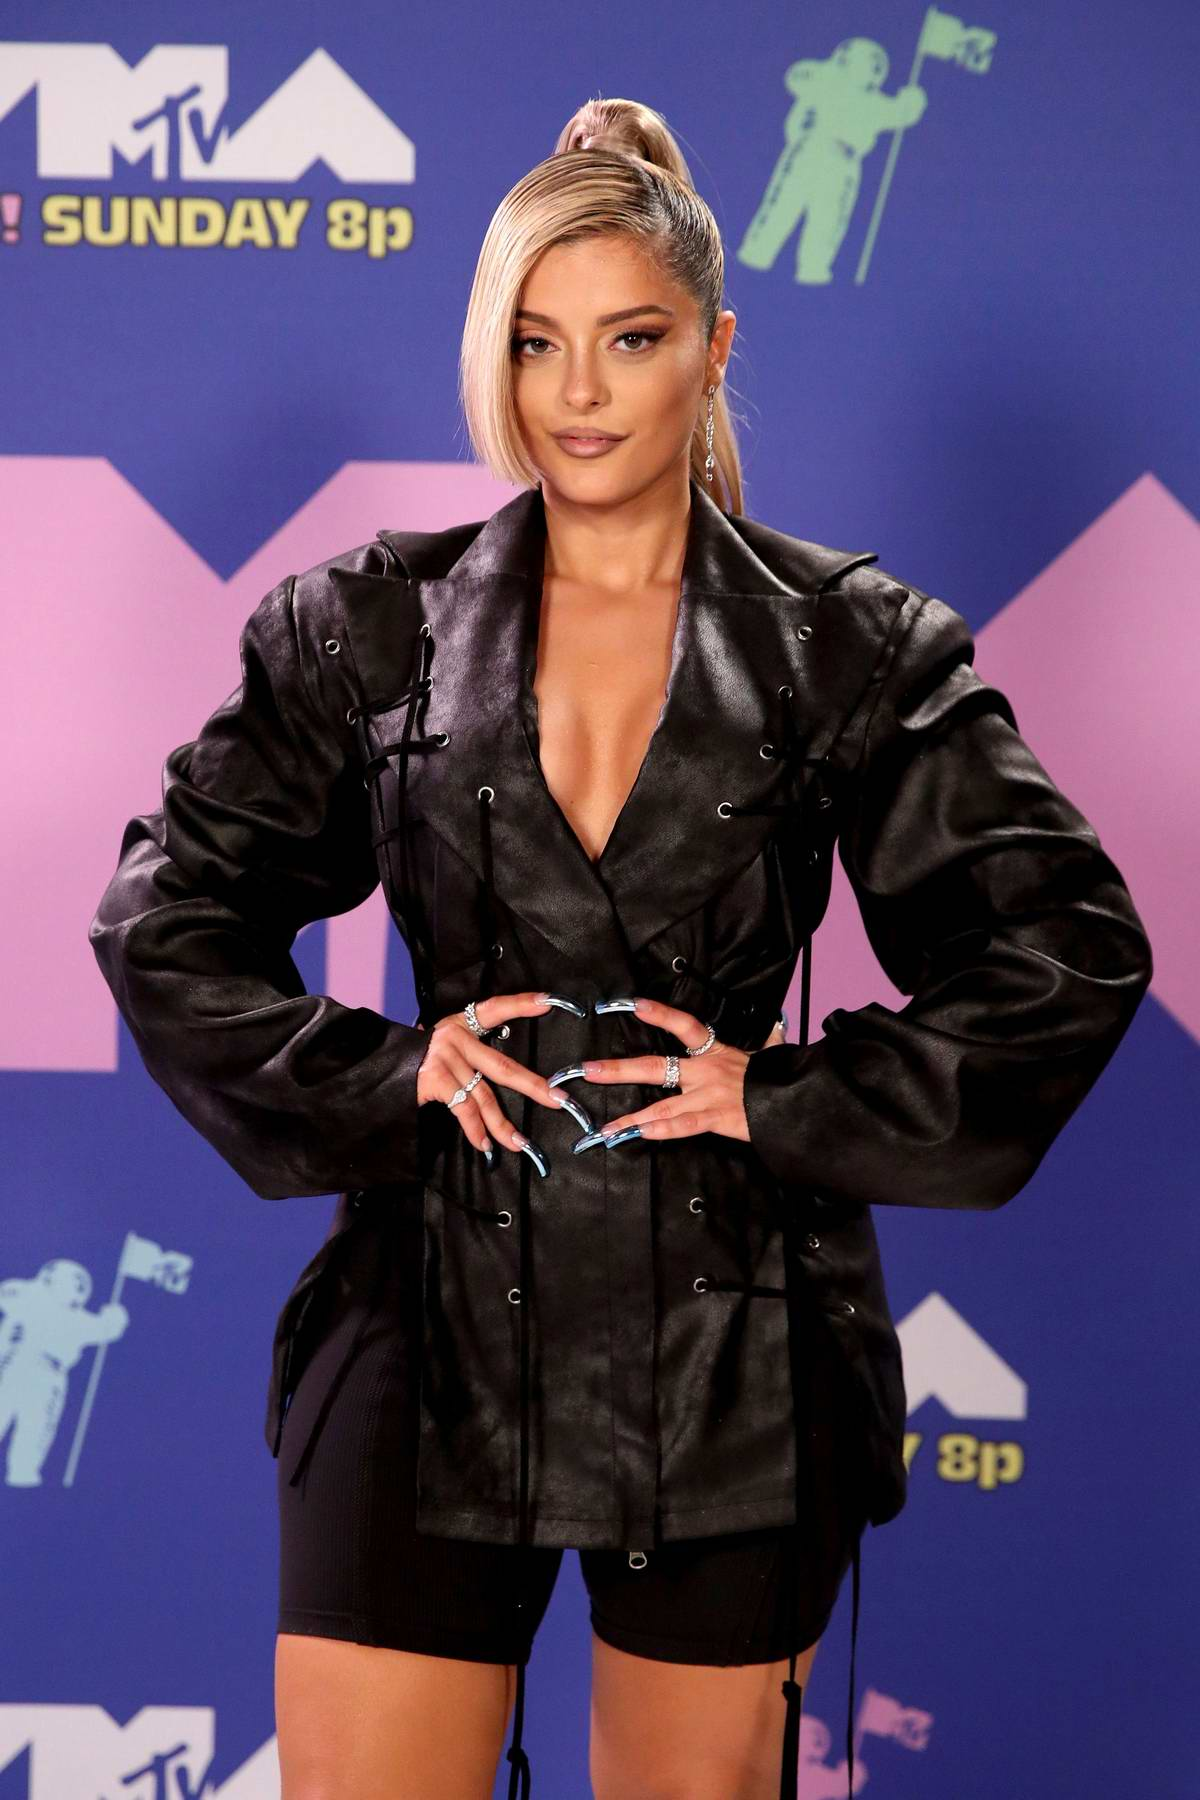 Bebe Rexha attends the 2020 MTV Video Music Awards in New York City